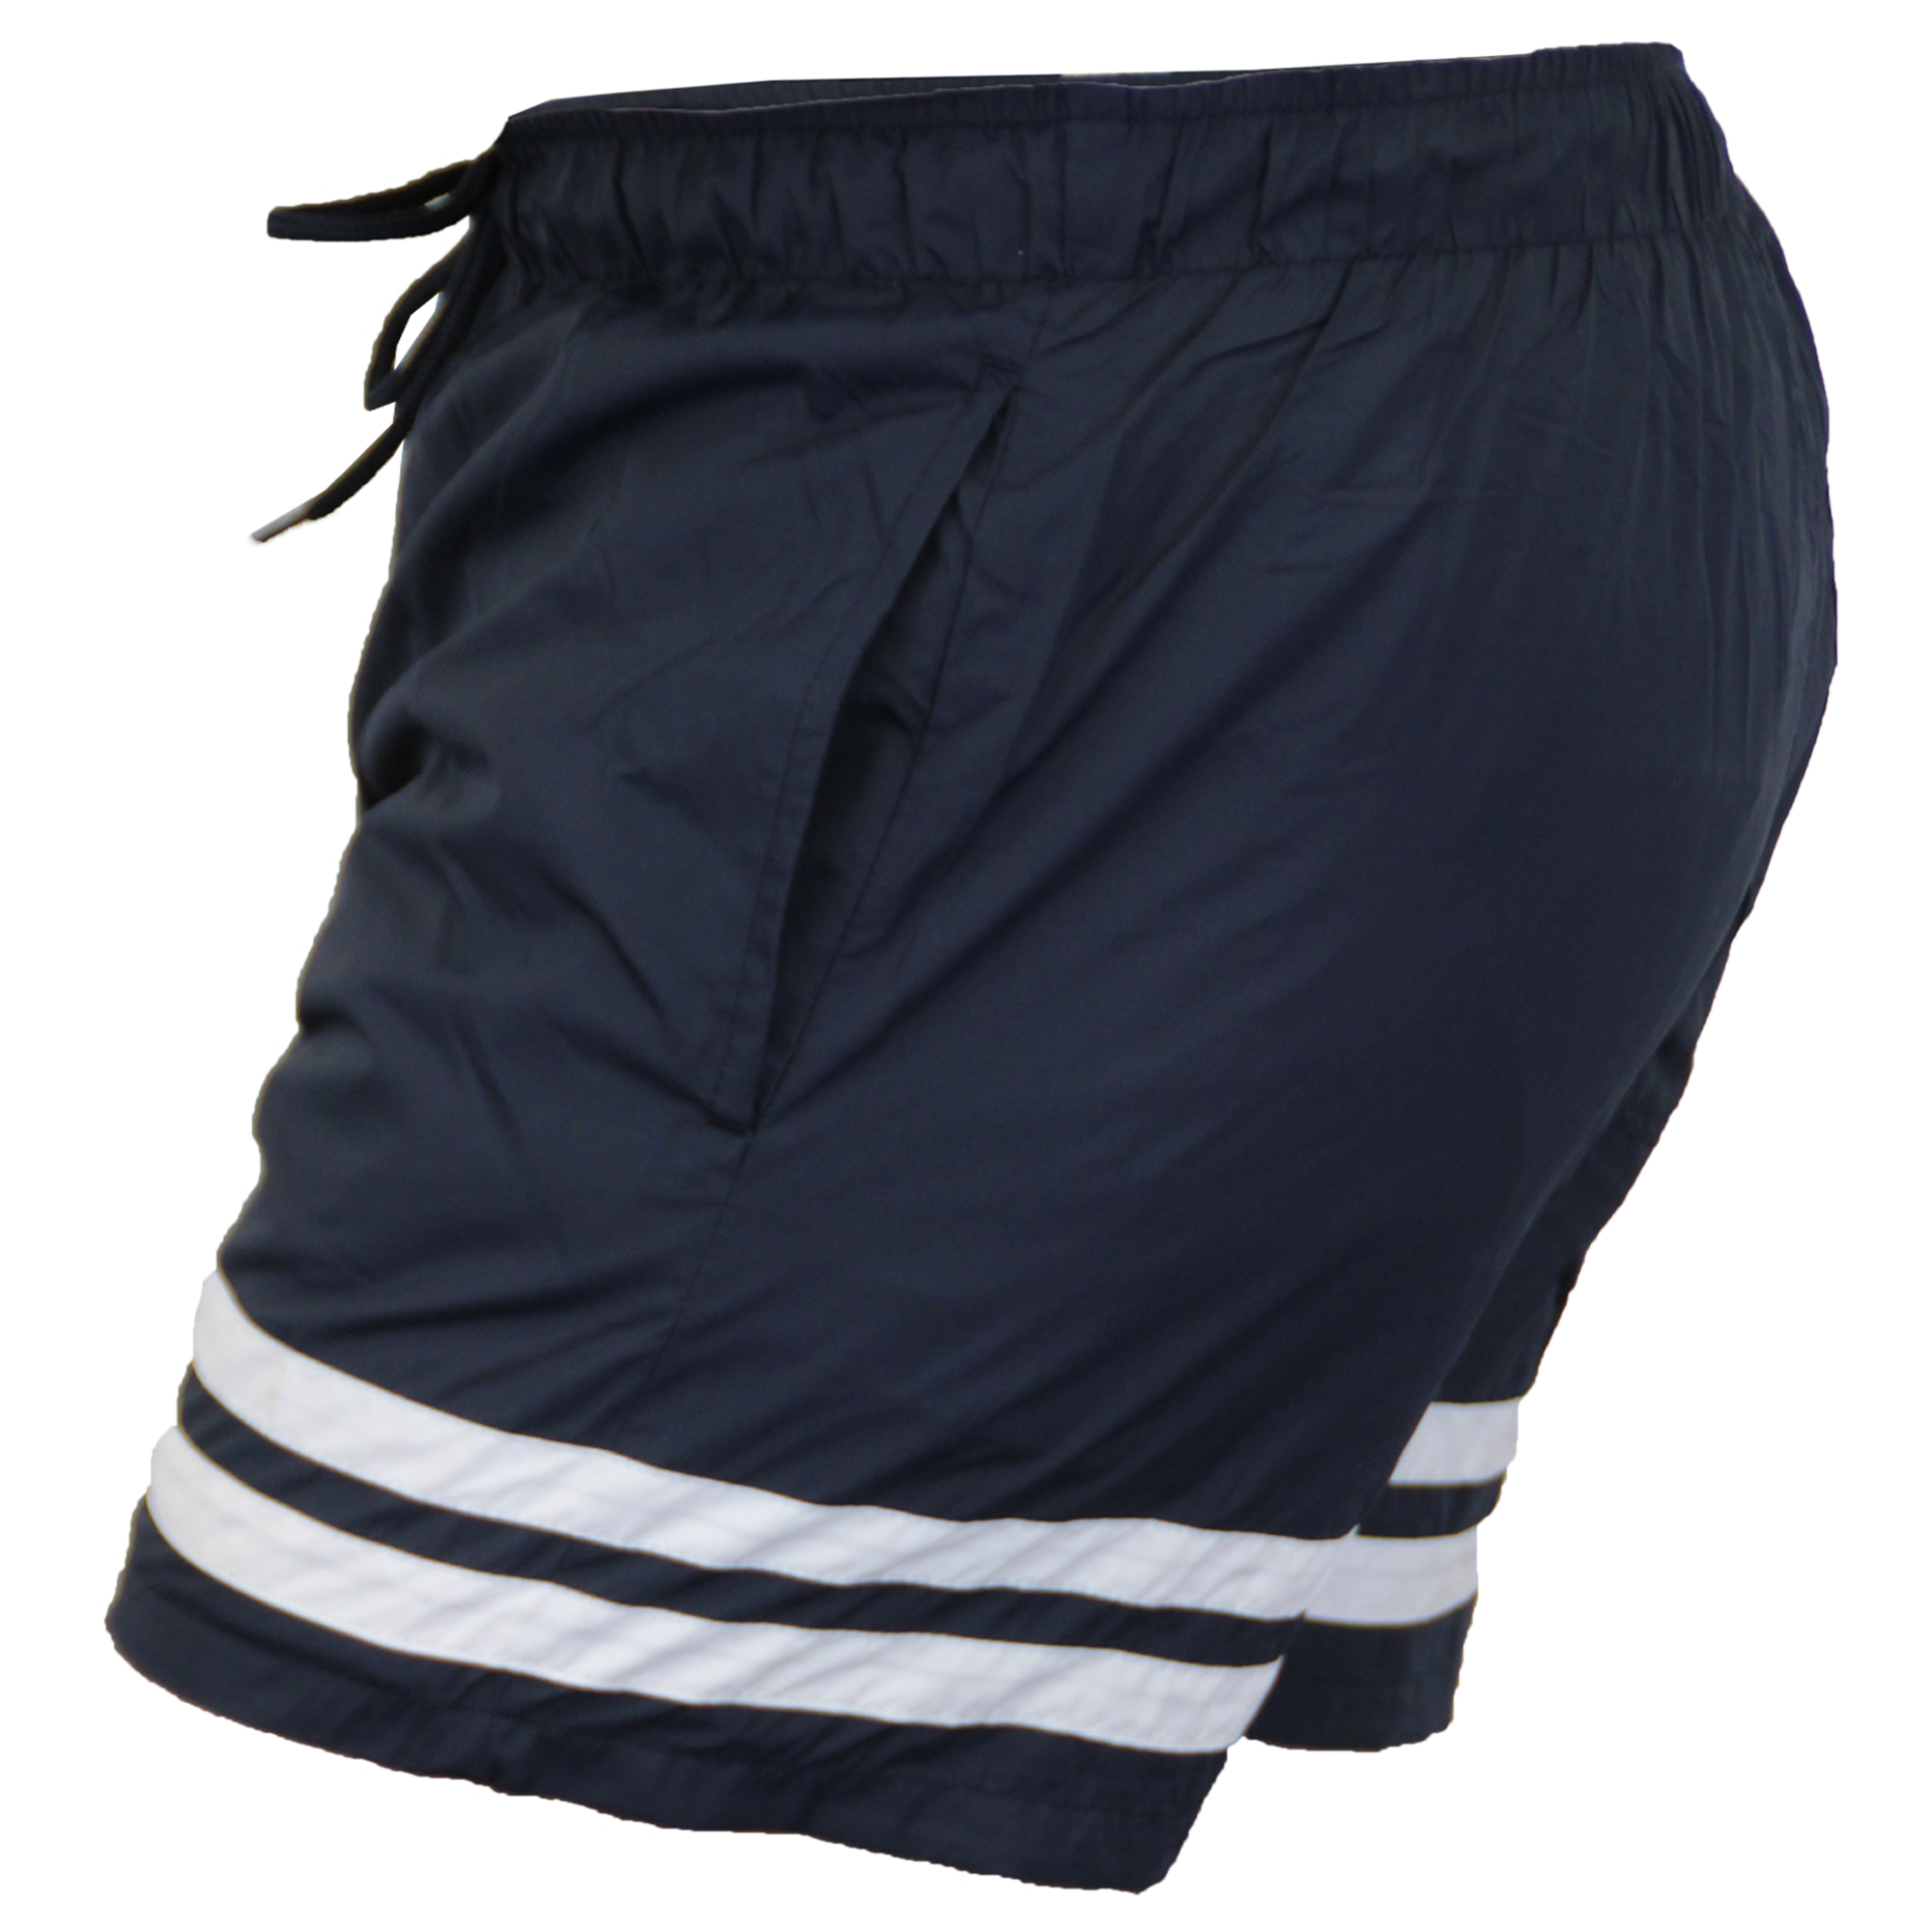 Mens-Swim-Board-Shorts-By-Brave-Soul-Mesh-Lined-New thumbnail 37